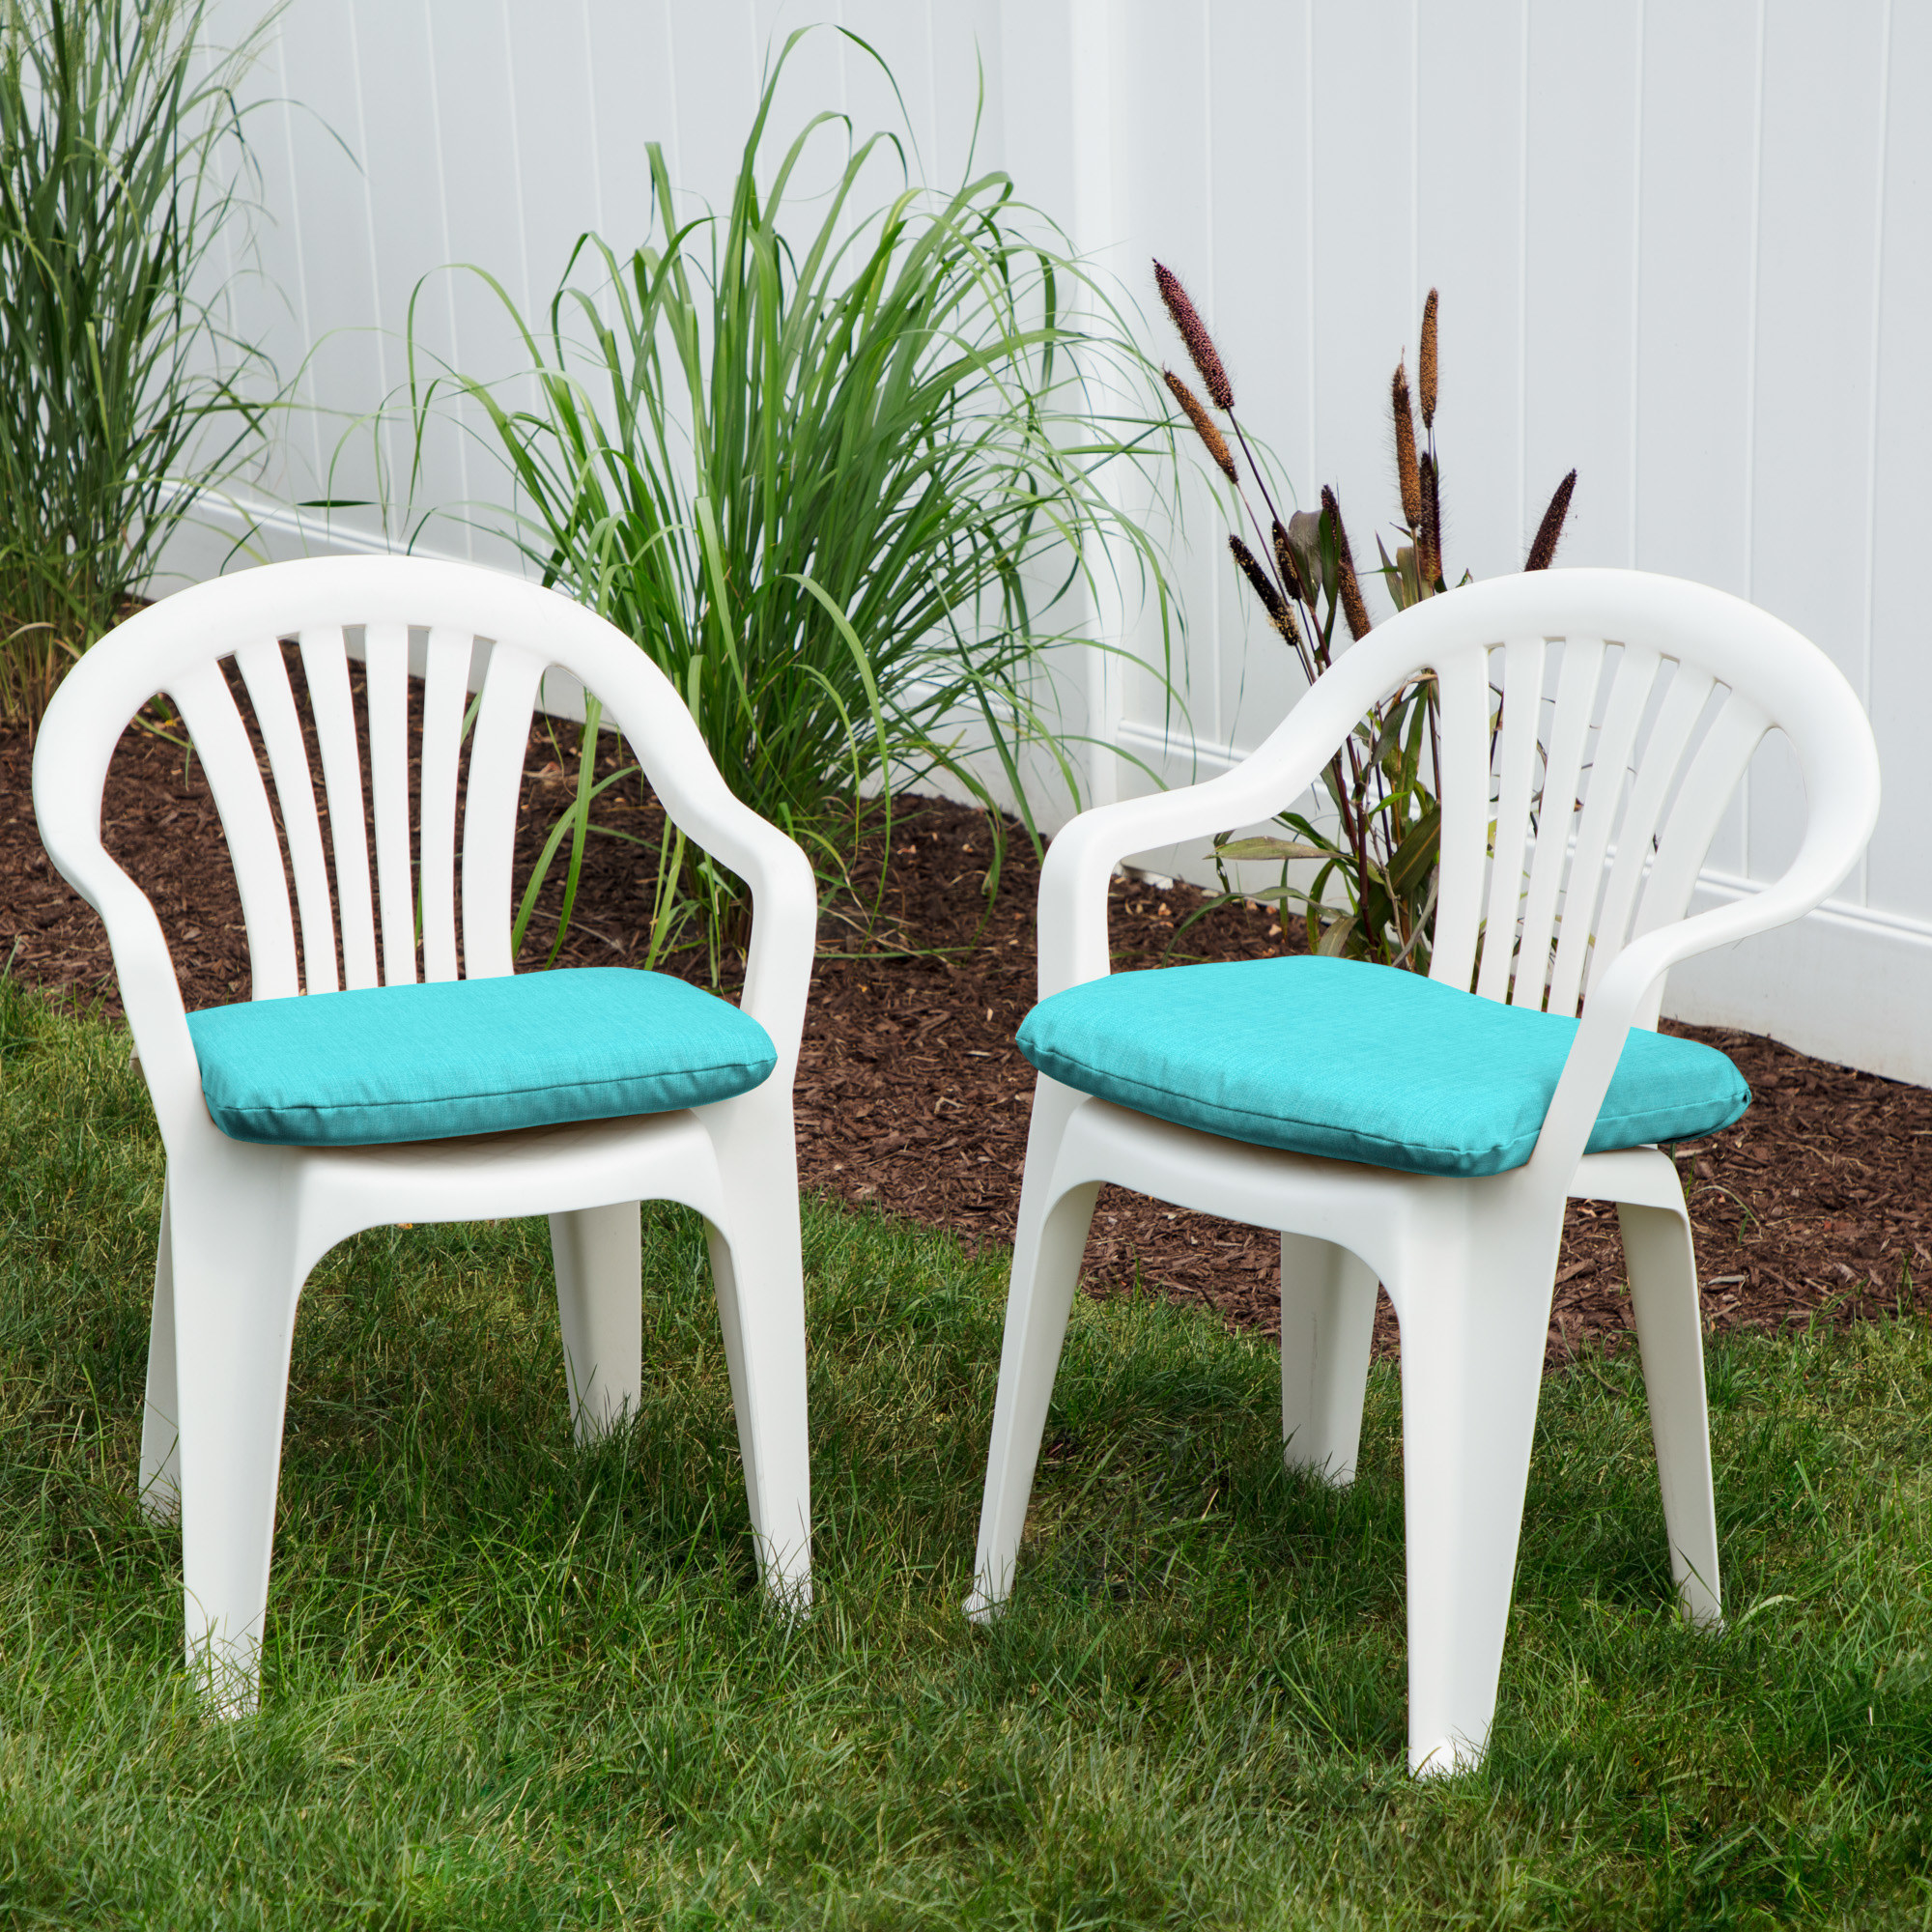 Two white, plastic patio seats with aqua color cushions